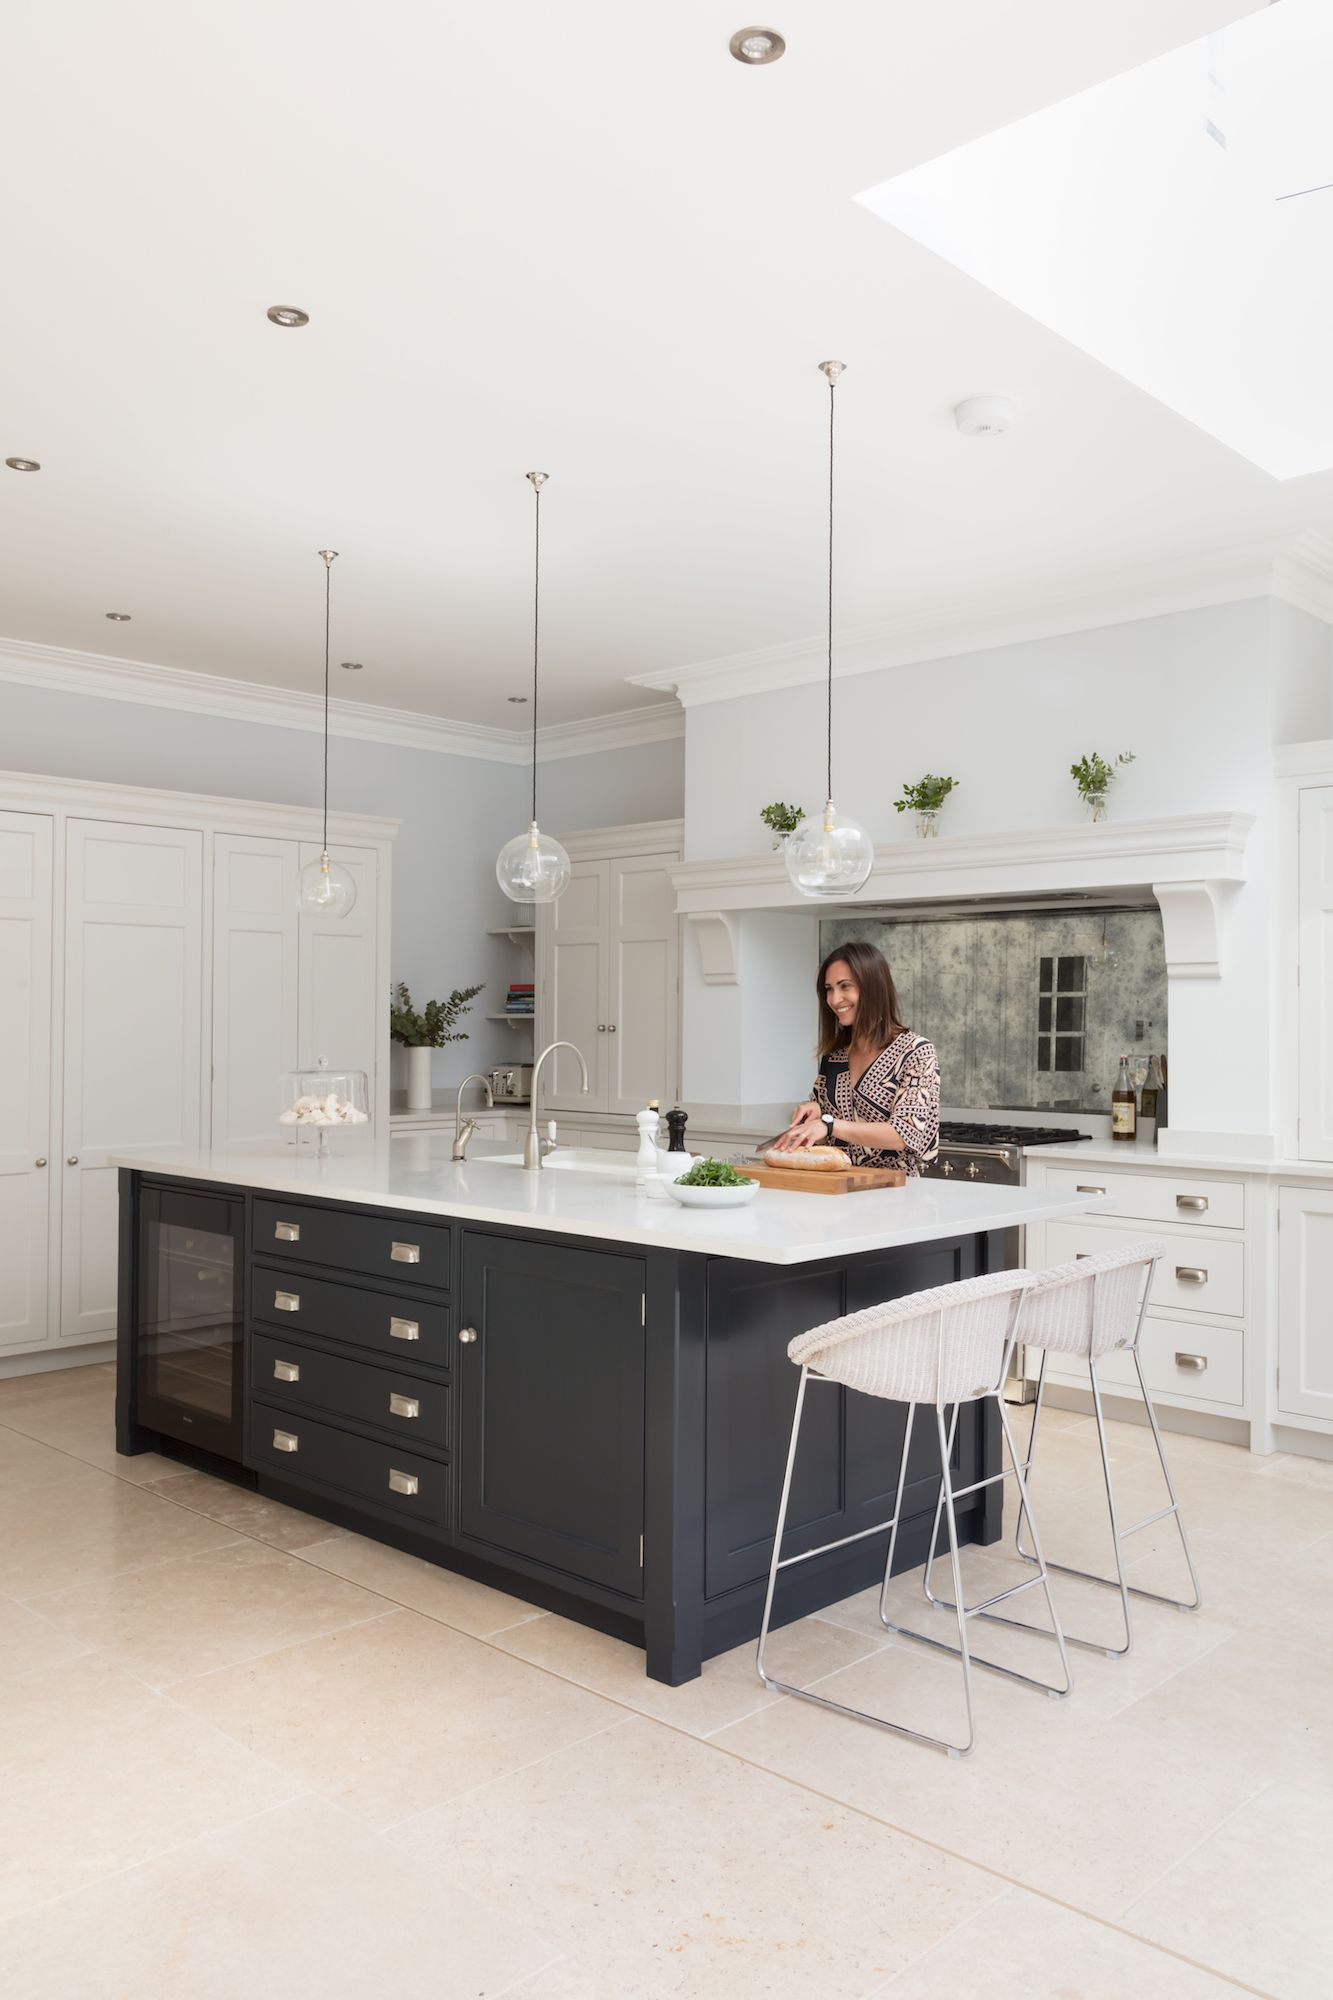 Kitchen Design Open Plan ριитєяєѕт Tashtrbl Open Plan Luxury Kitchen London